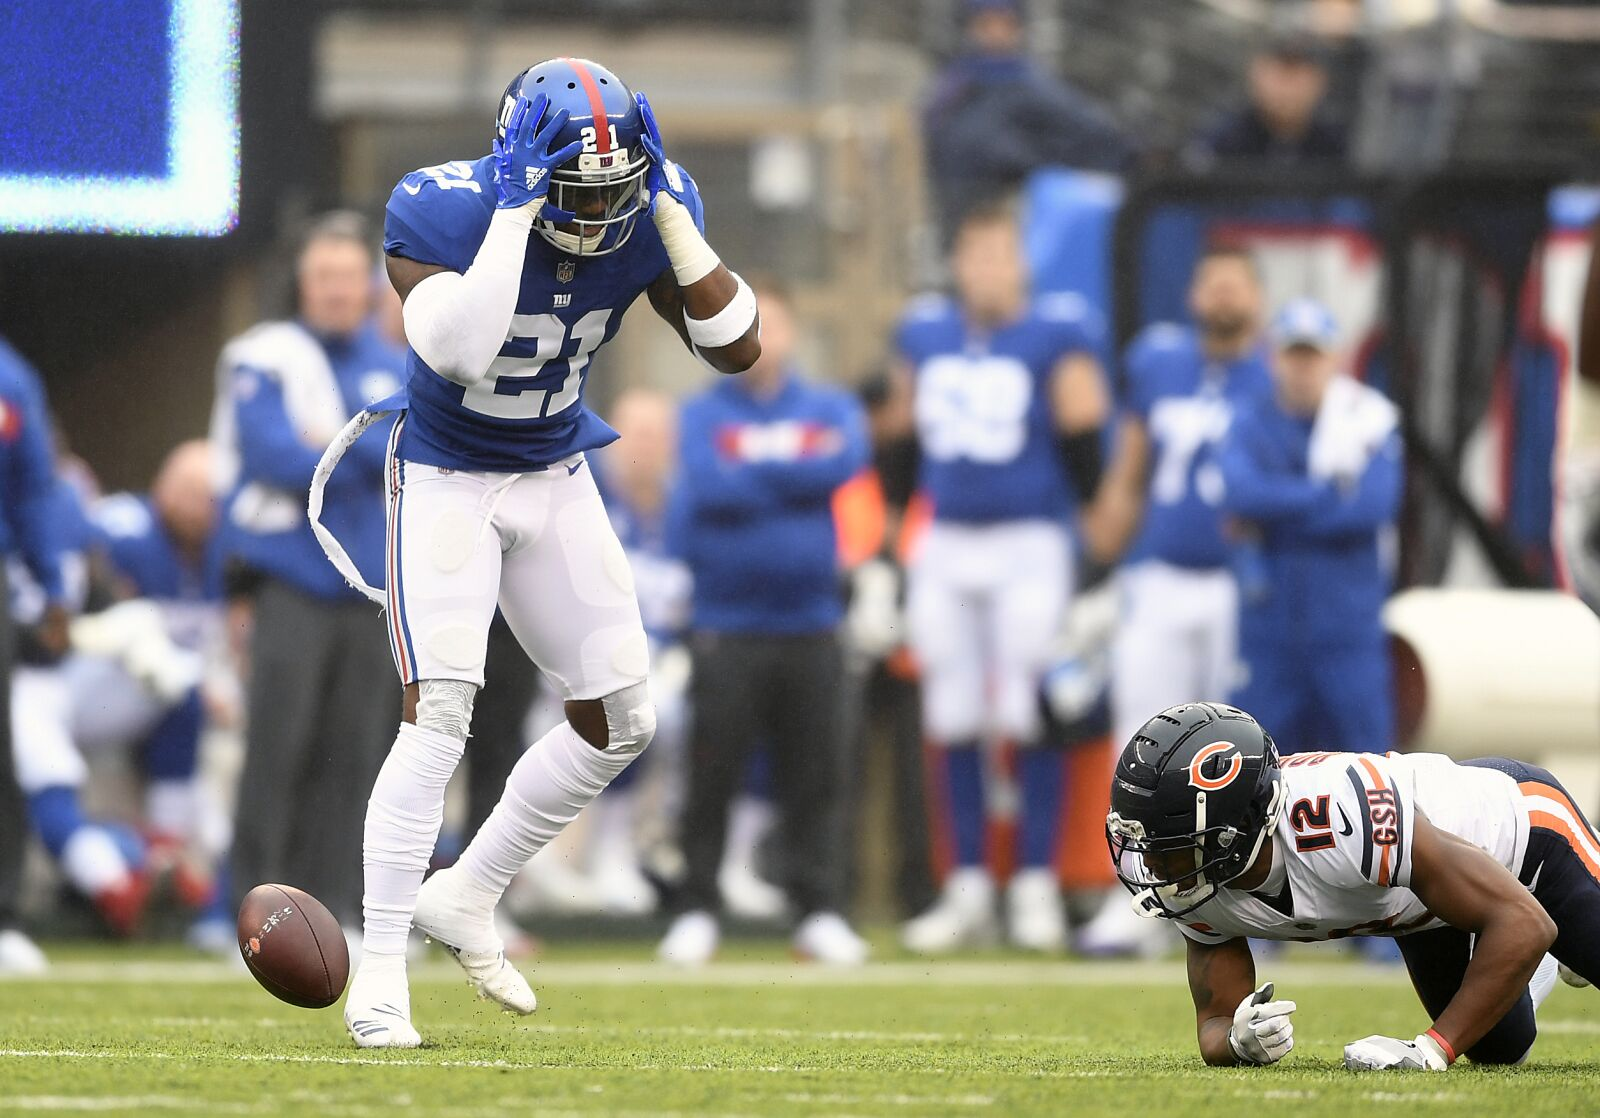 New York Giants enemy exchange: 5 Washington Redskins questions answered